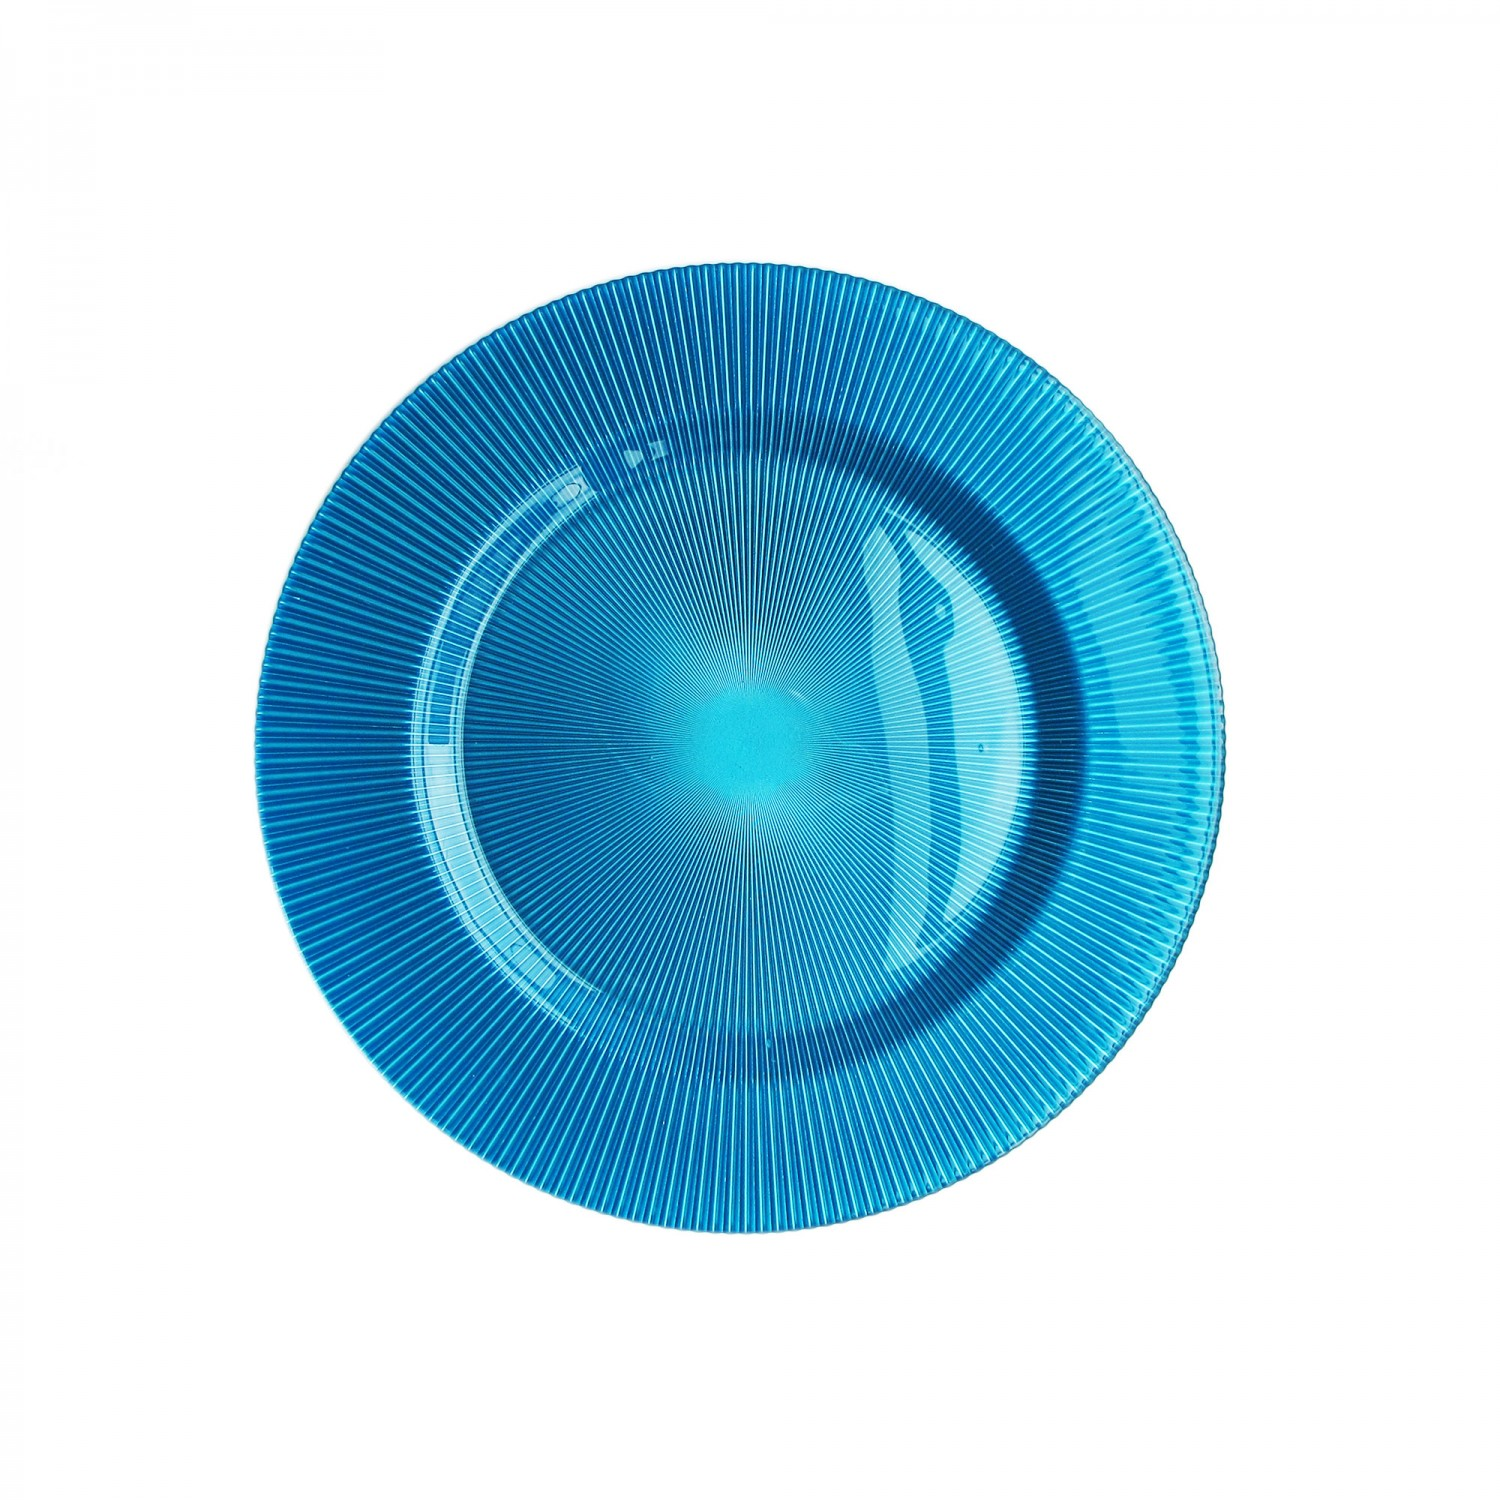 The Jay Companies 1470343 Round Sunray Turquoise Glass Charger Plate 13""